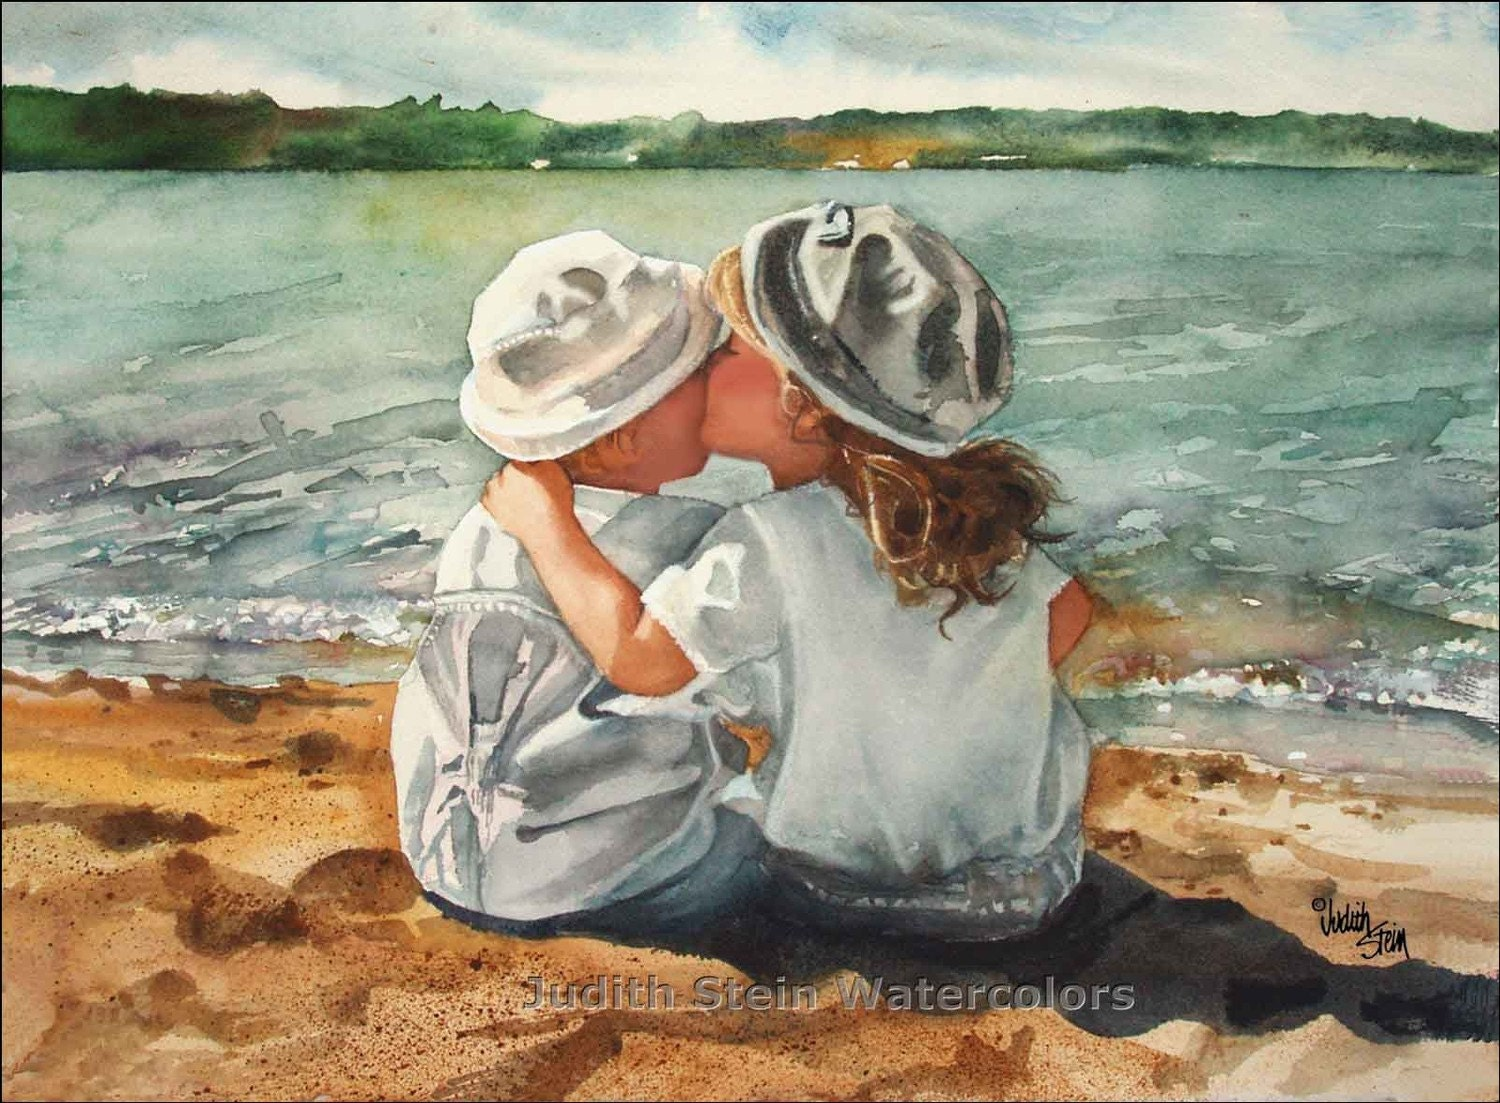 BEACH KISSES Children at Play 15x11 Giclee Watercolor Art Print - steinwatercolors